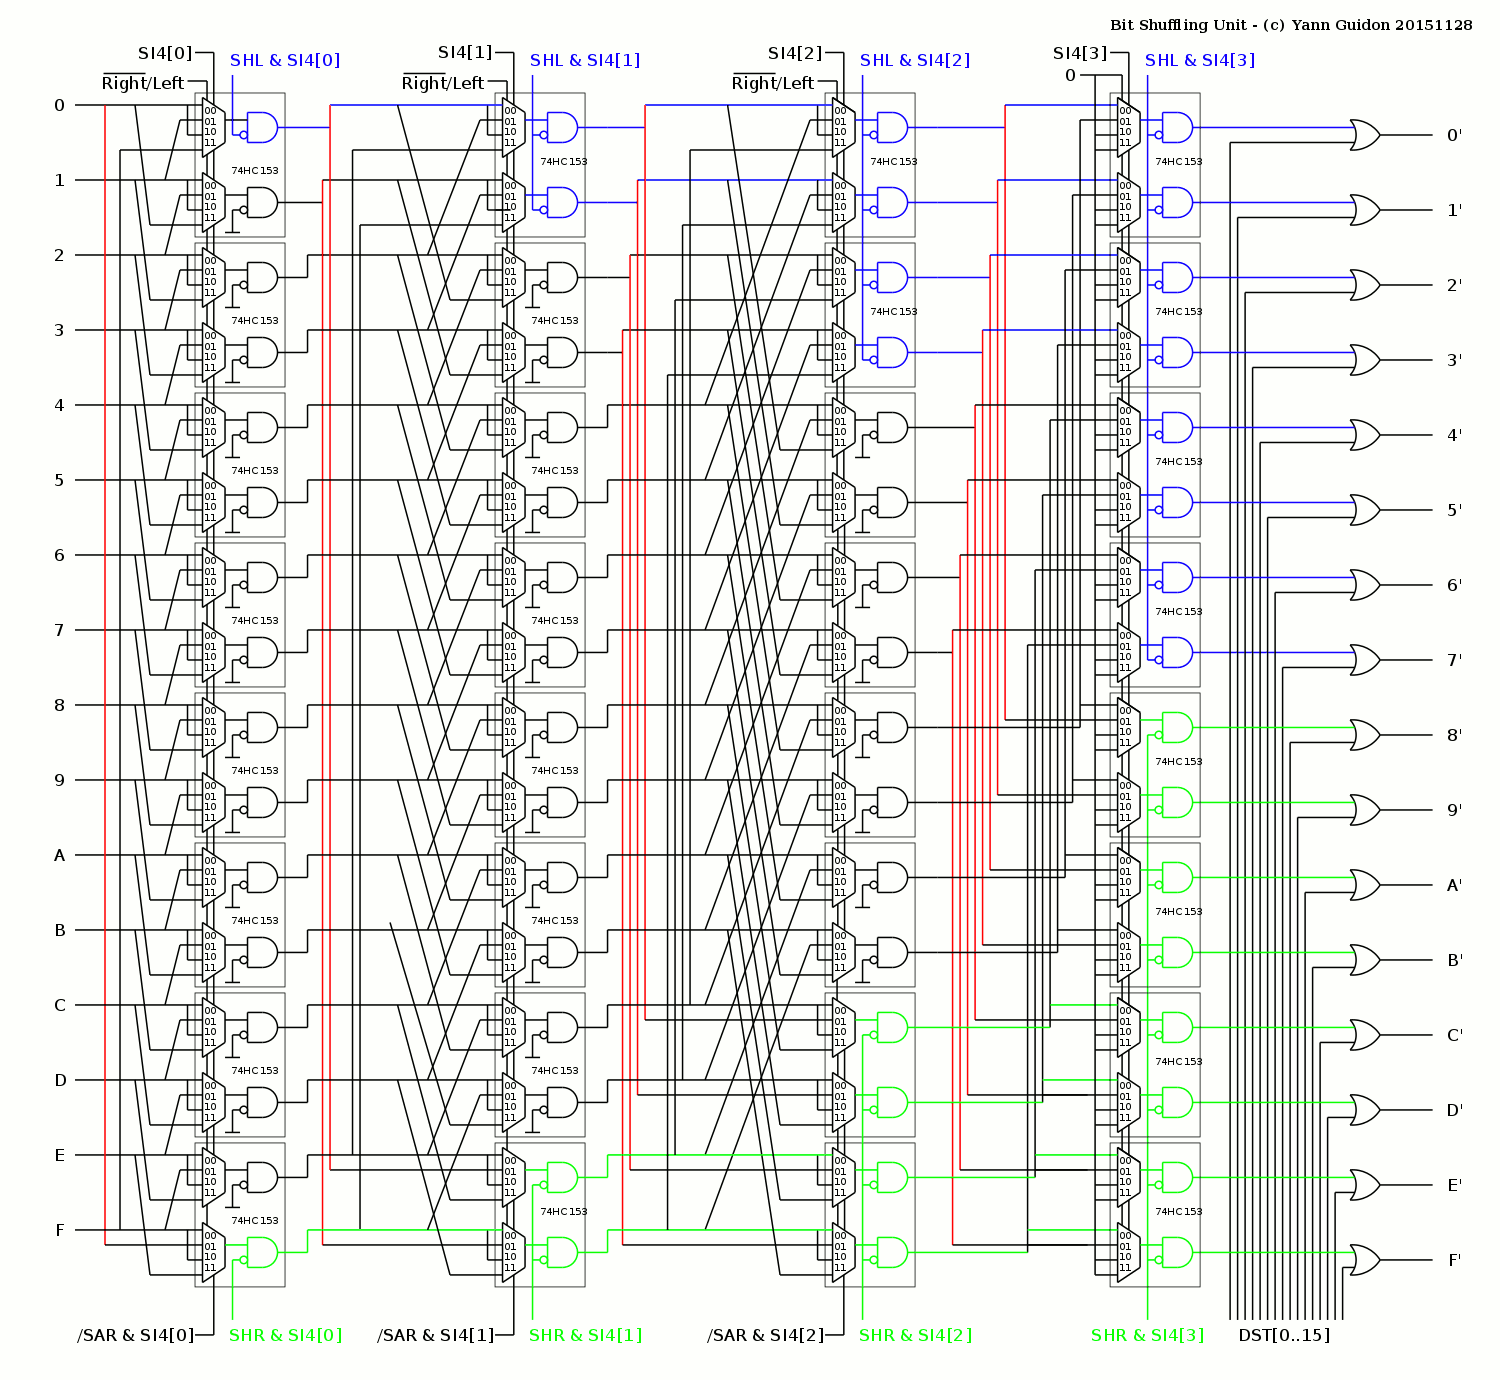 Mux Circuit Diagram Electrical Wiring Of 4 1 Multiplexer Project Discrete Yasep Hackaday Io And Demux 2x1